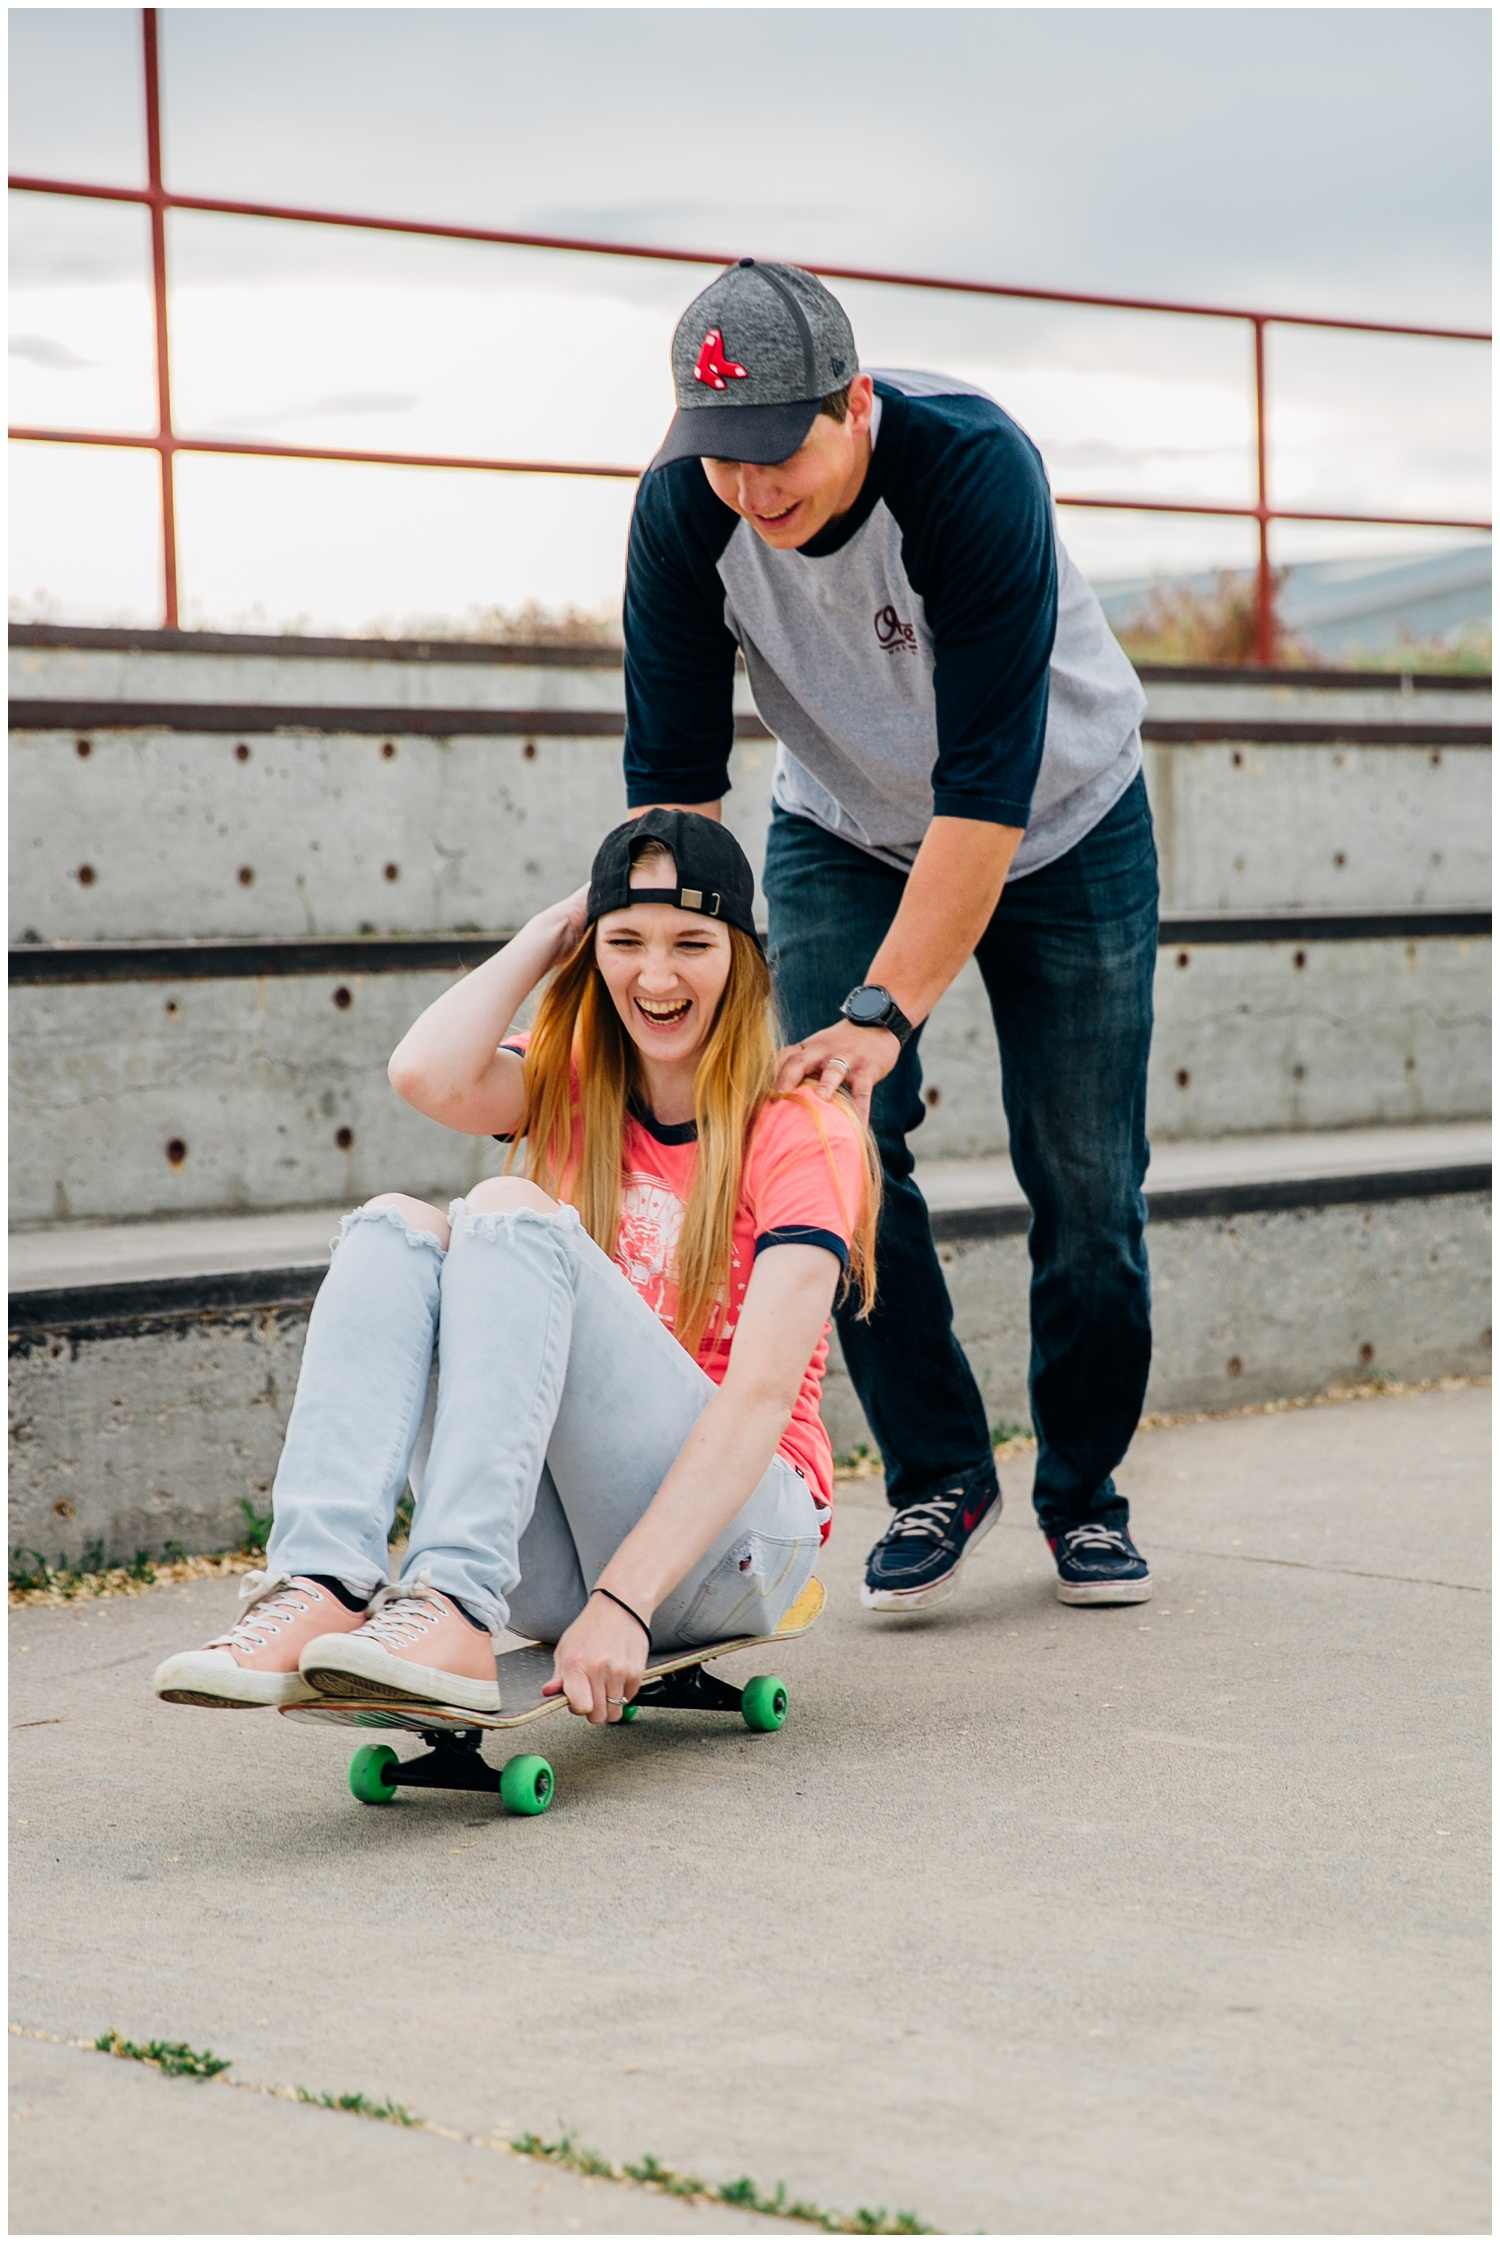 skatepark-engagements-skater-couple-rigby-idaho-wedding-photographer_2063.jpg